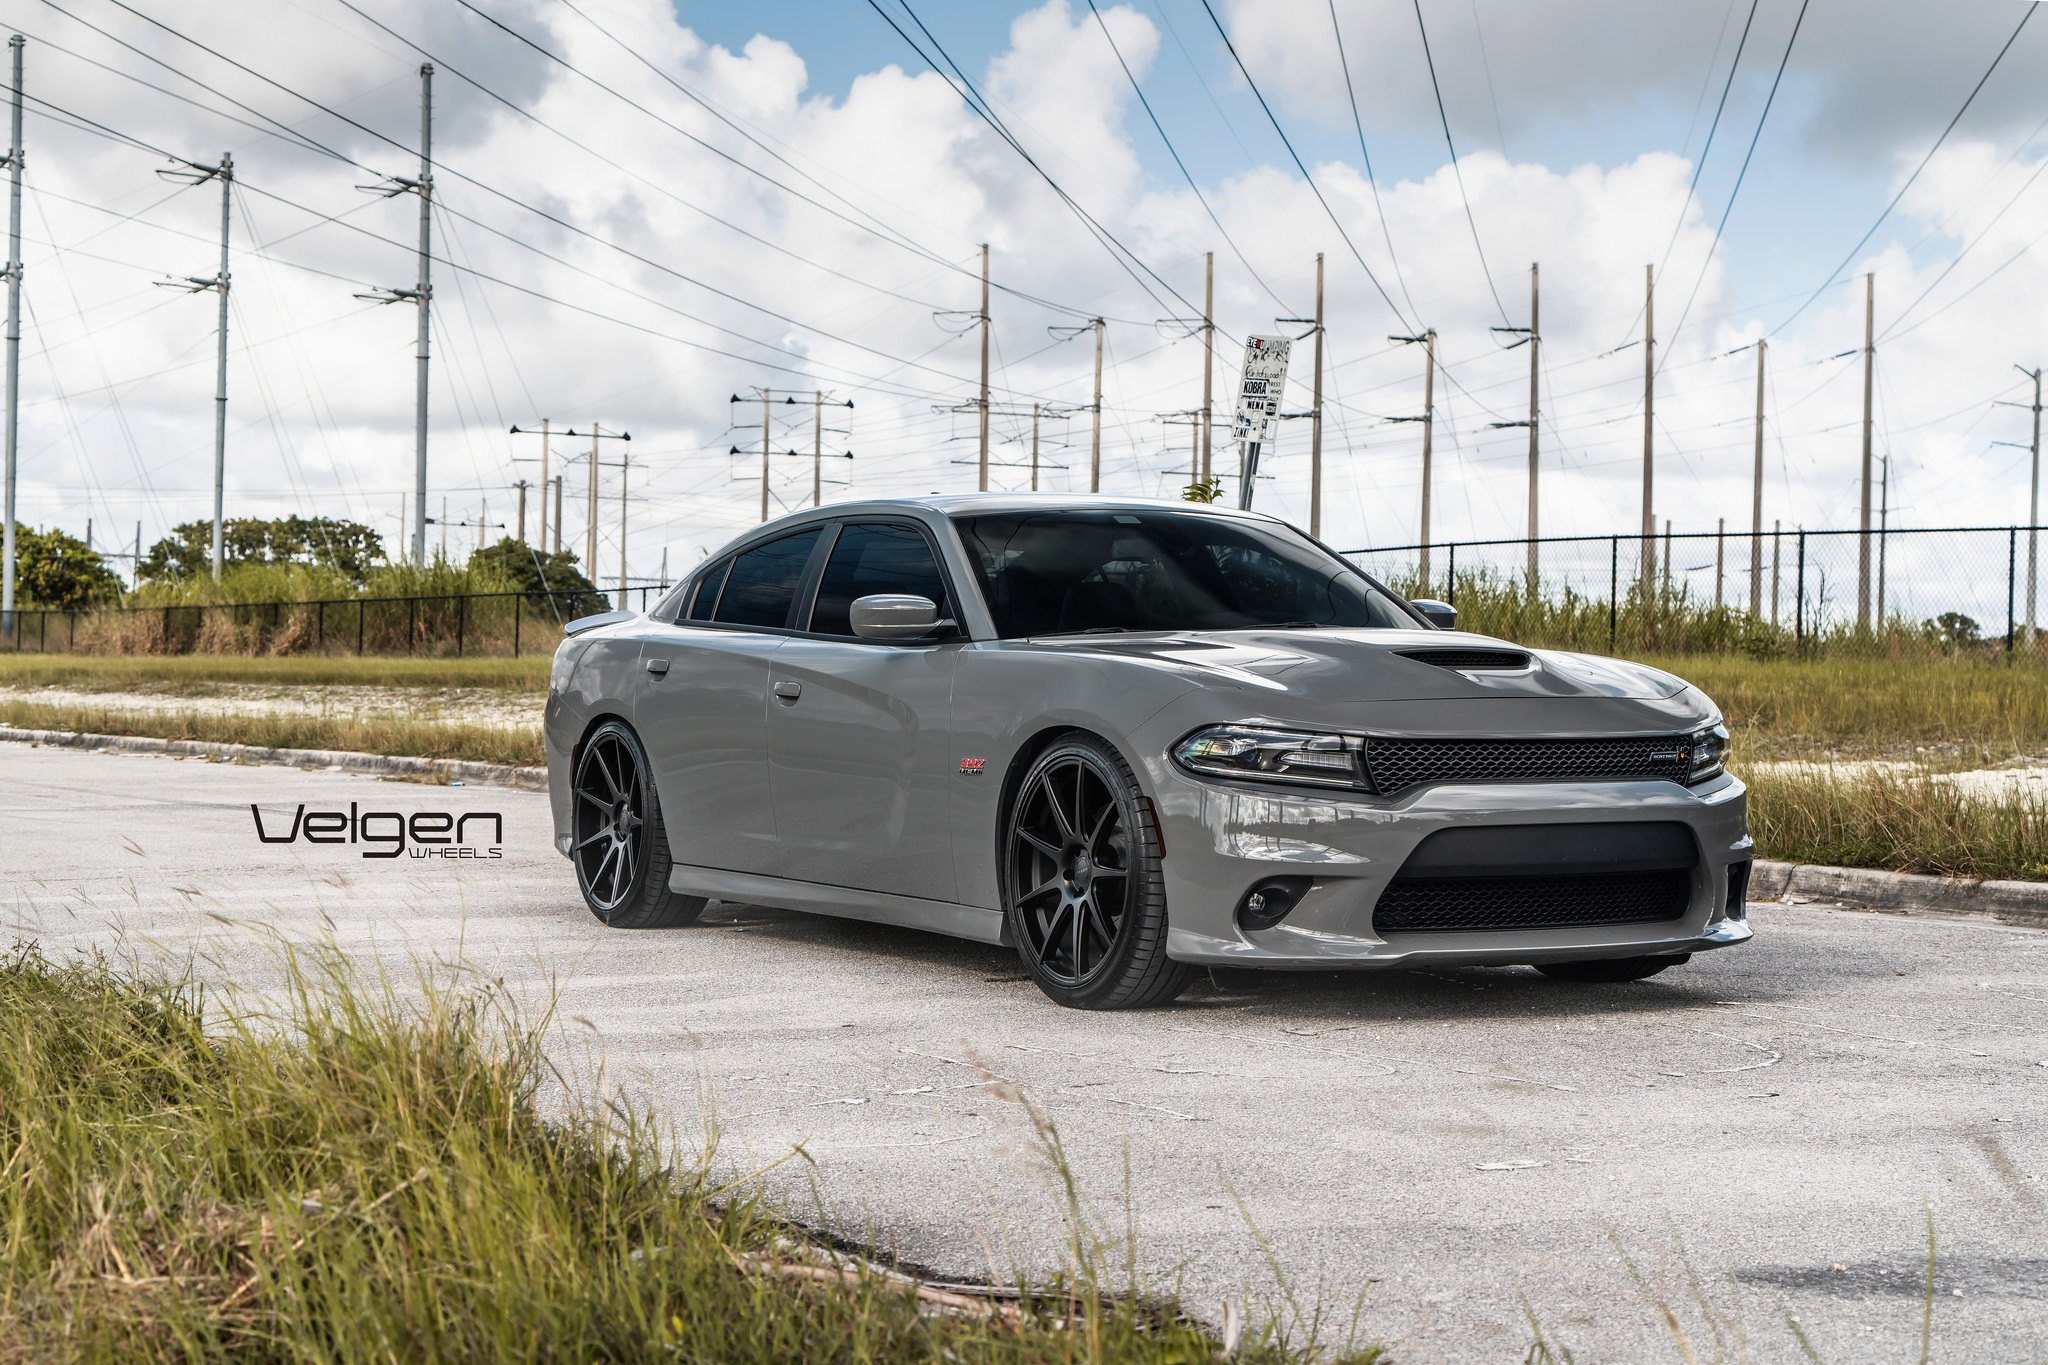 Custom Gray Dodge Charger Looking Mean with Velgen Wheels — CARiD.com  Gallery | 2015 Dodge Charger Custom Wheels |  | CARiD.com